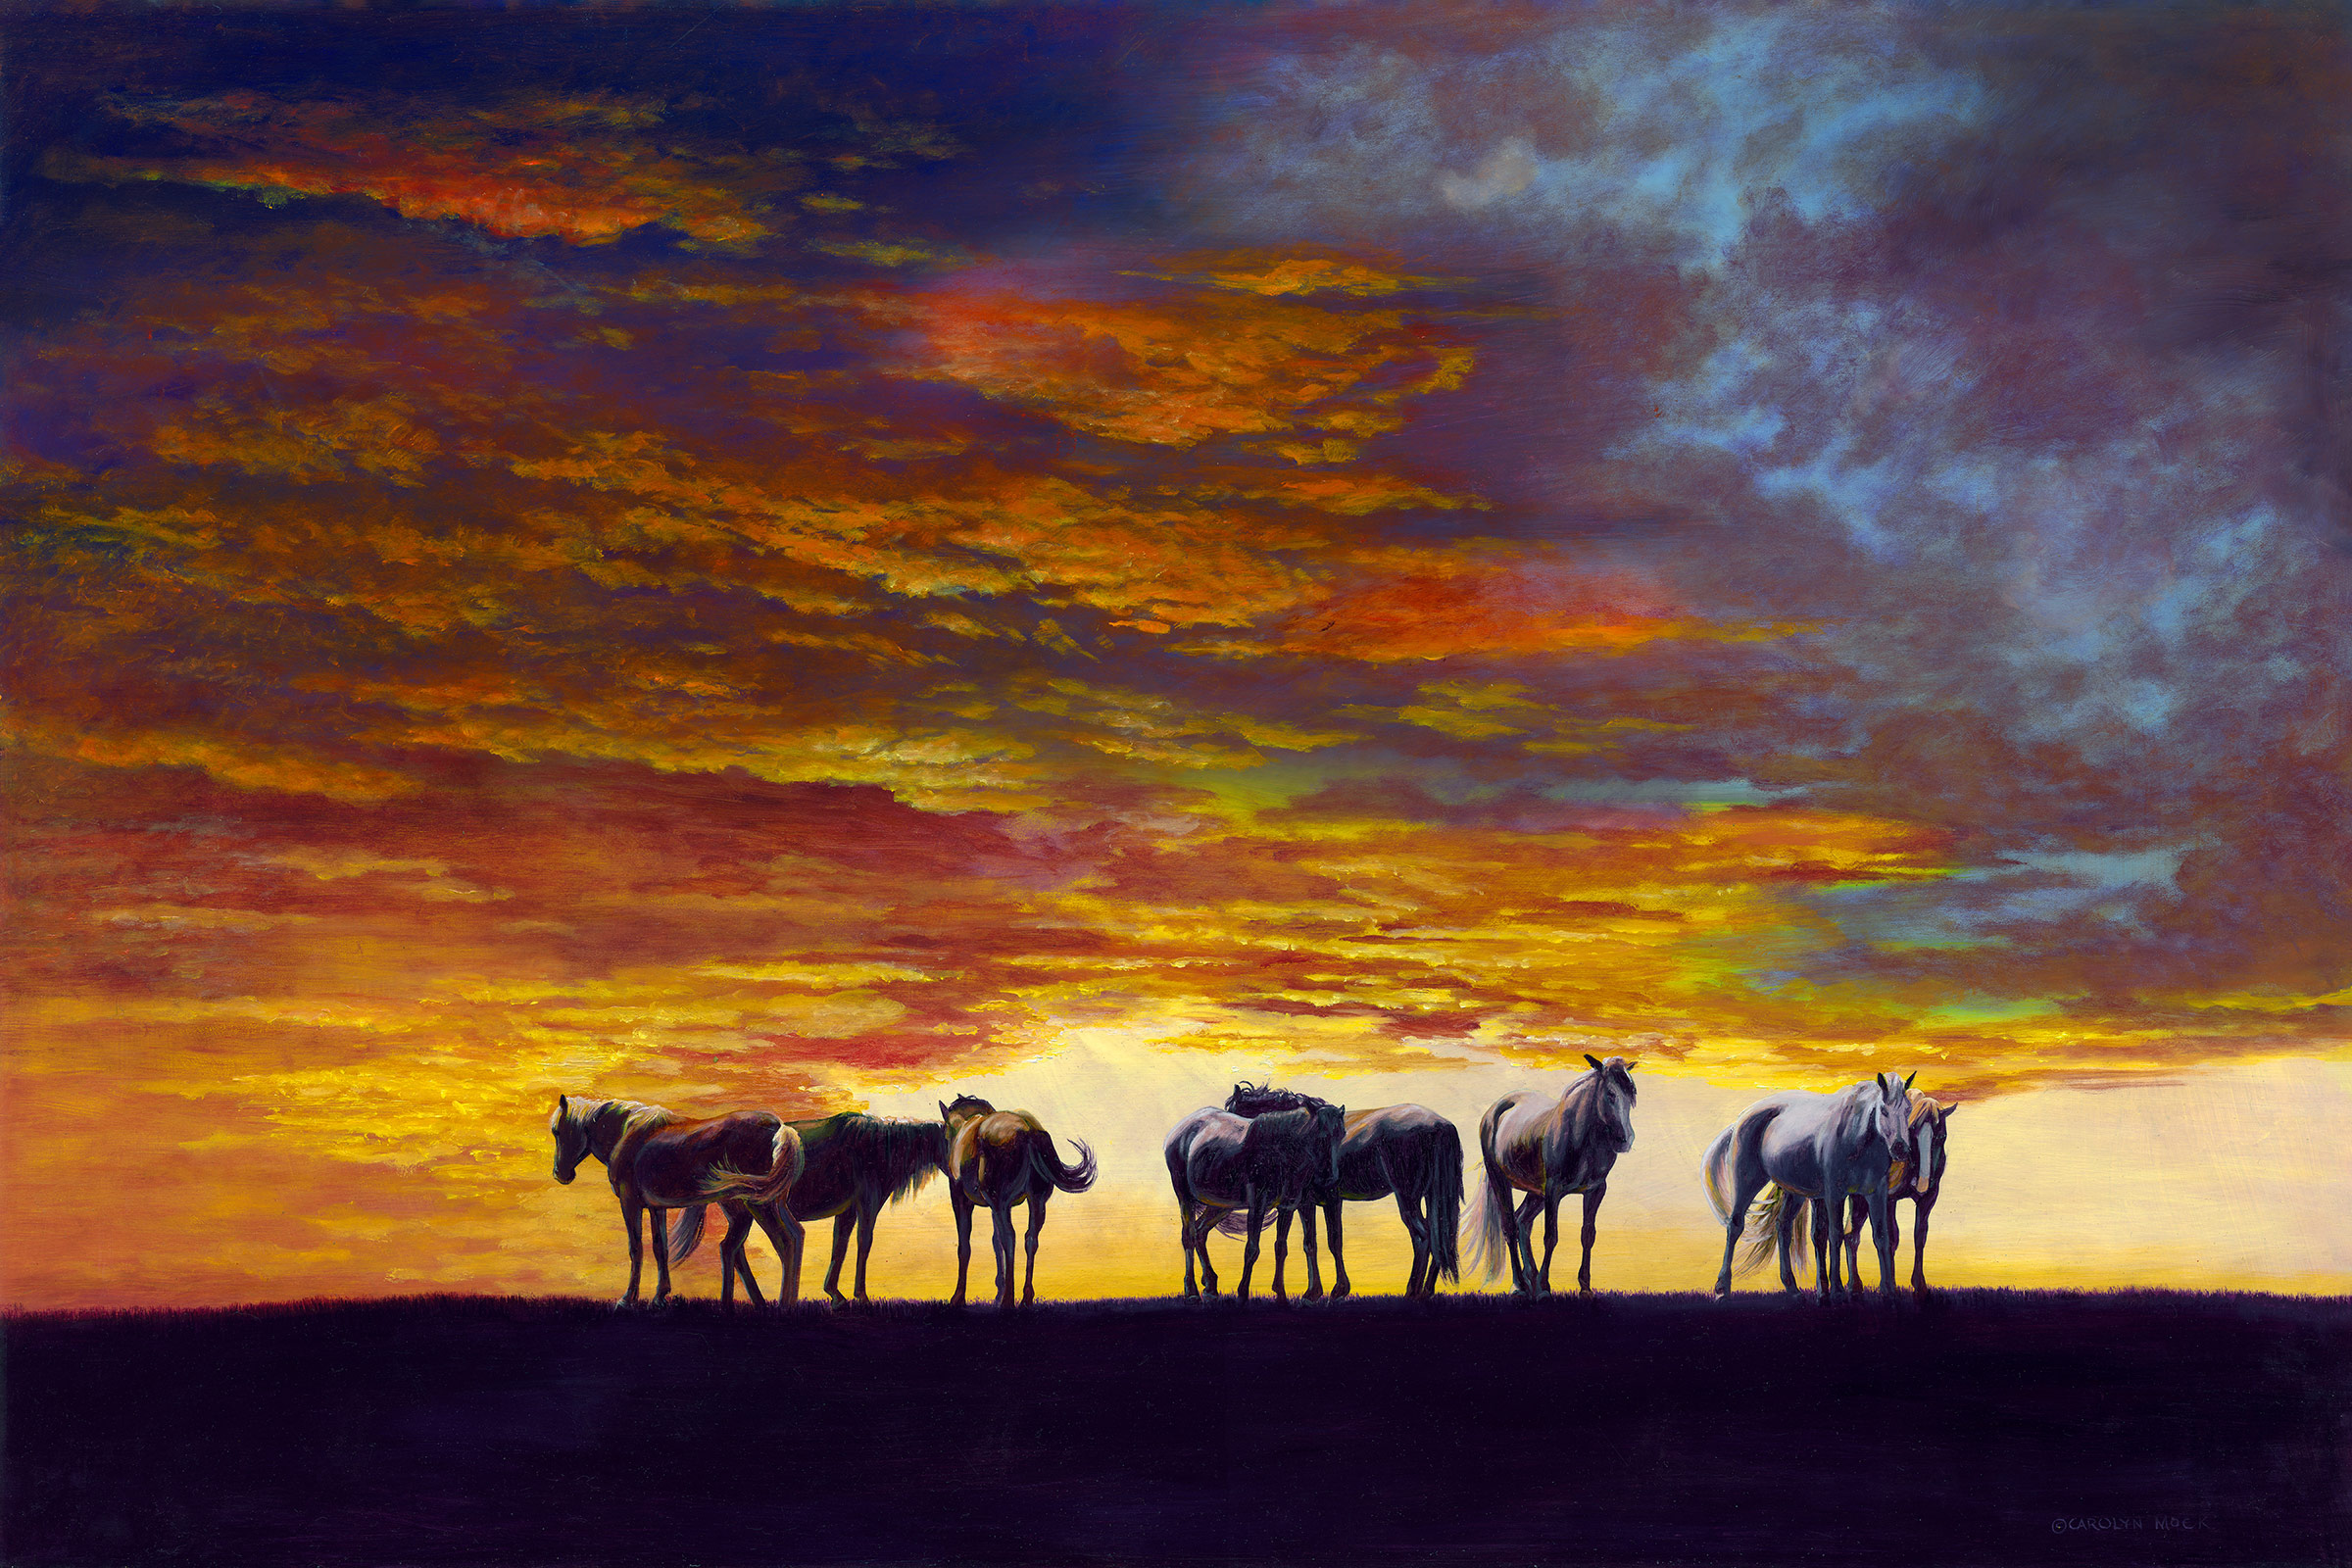 A herd of horses graze at sunset